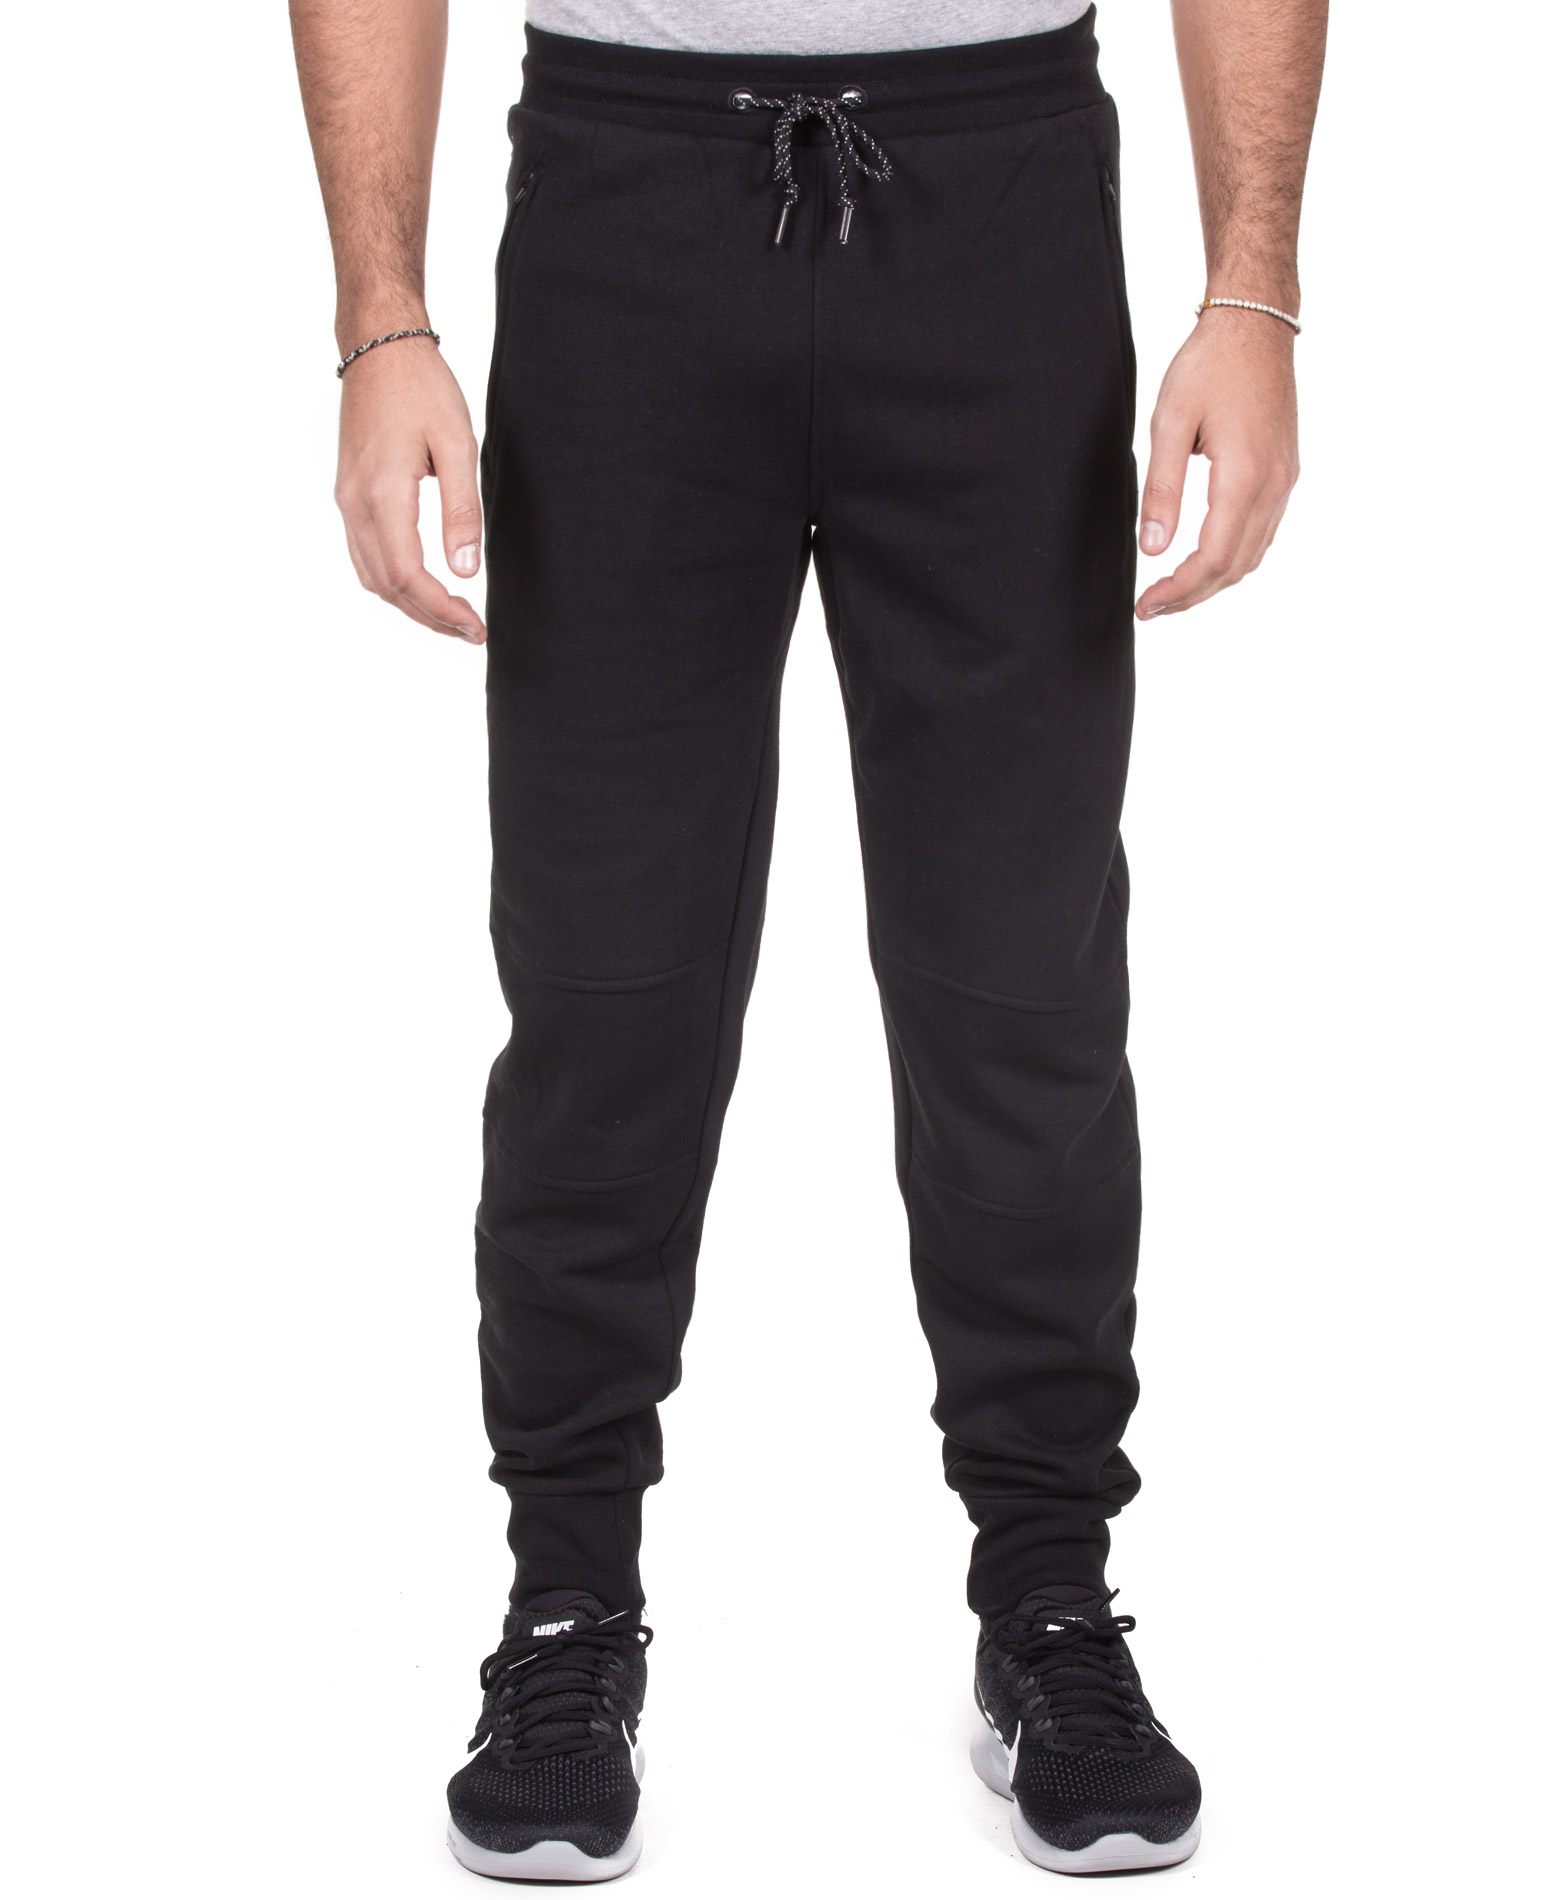 RUSSELL ATHLETIC CUFFED LEGS PANT A7-077-2-099 Μαύρο